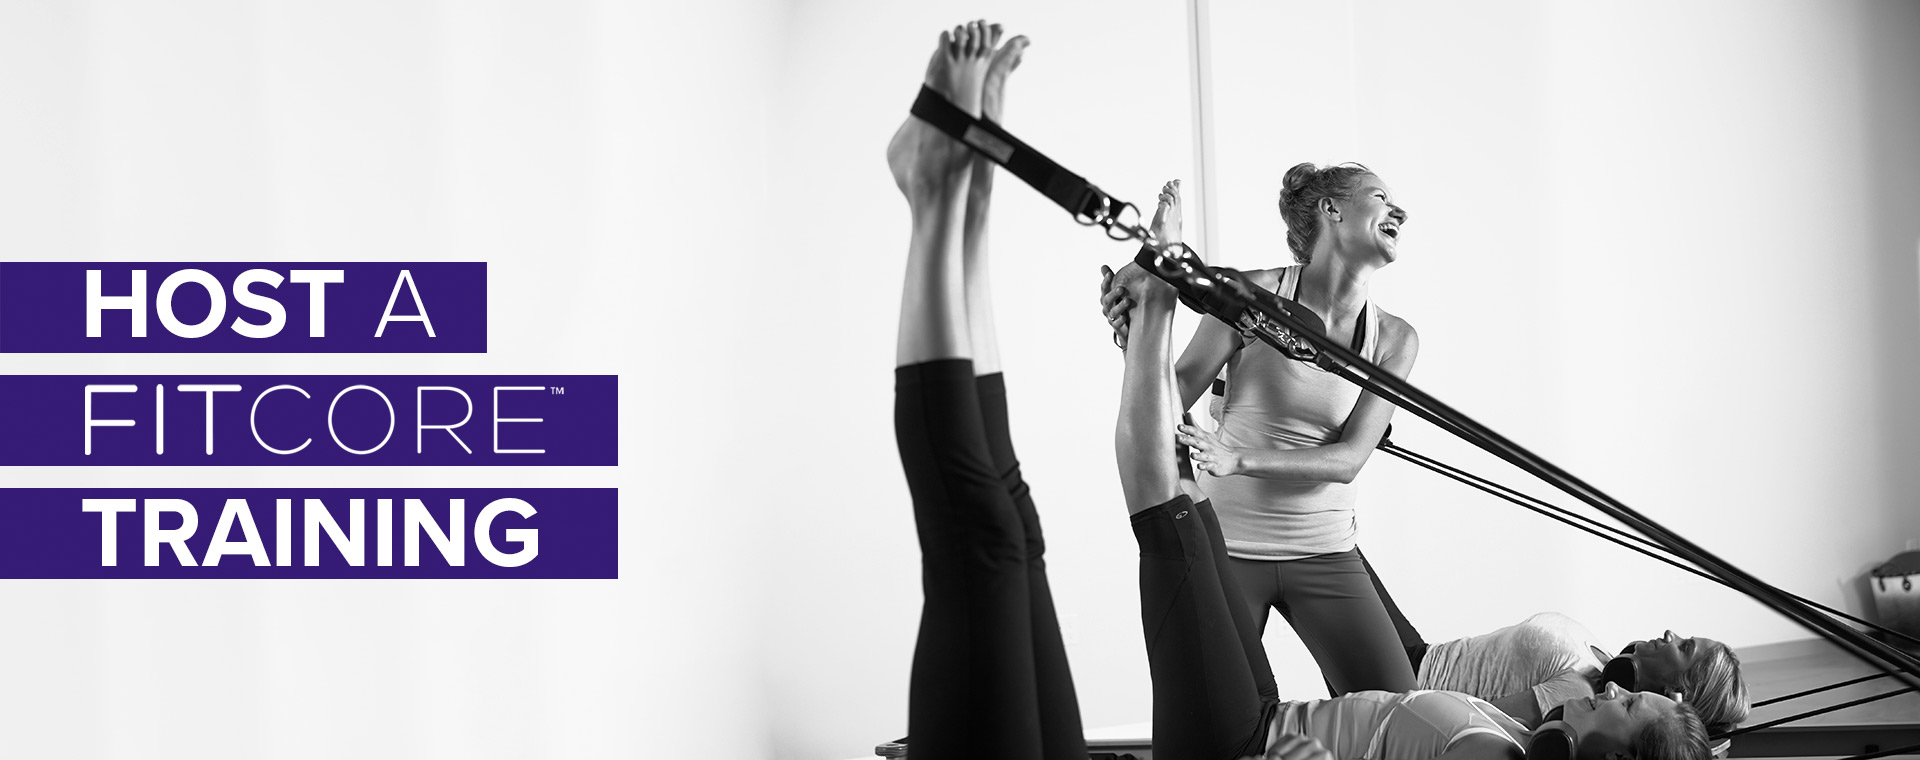 Host a FitCore™ Training